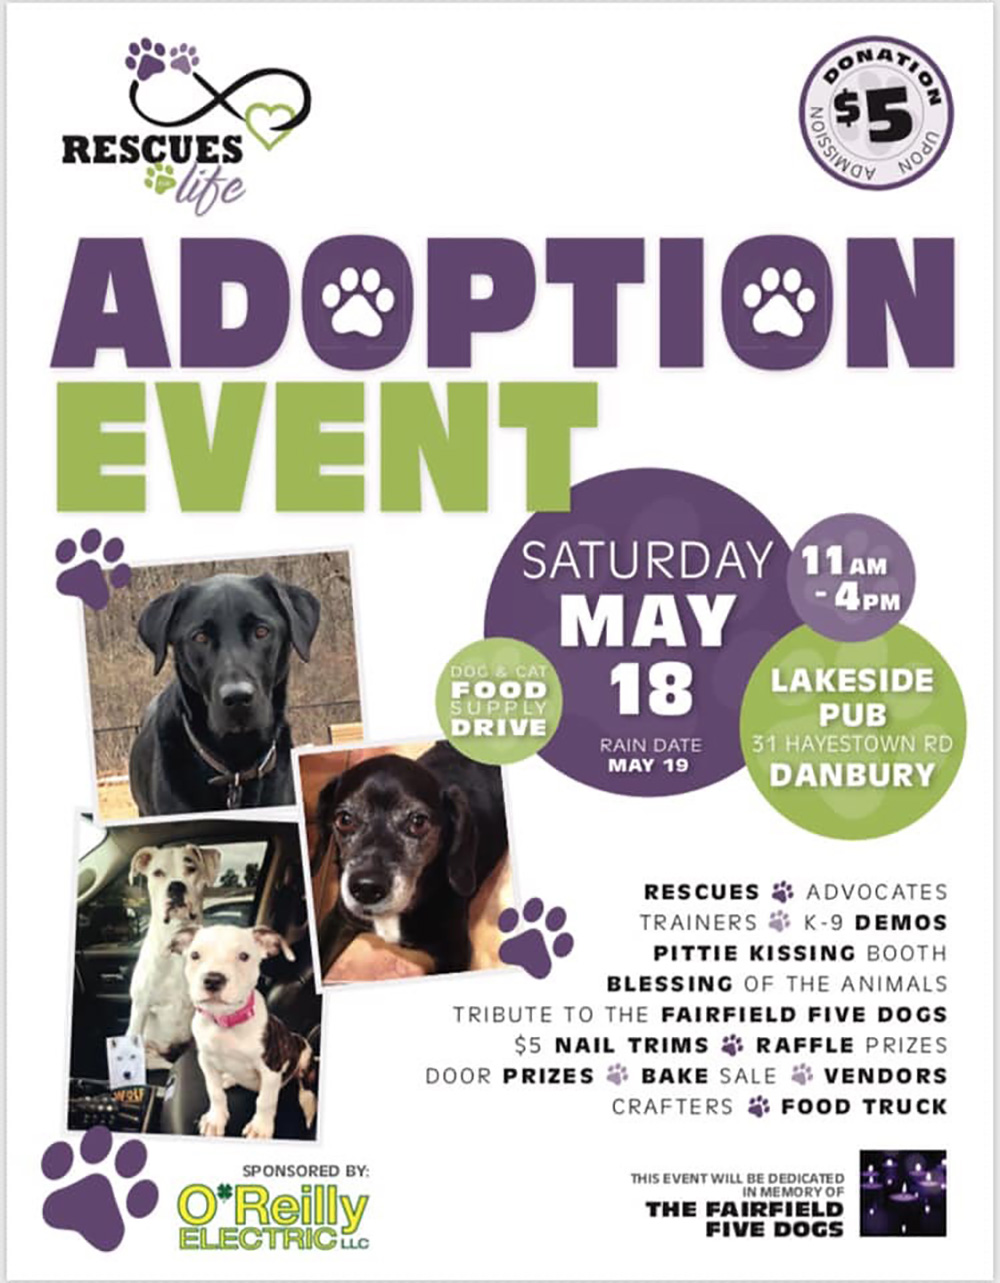 Rescues For Life Adoption Event Danbury Animal Welfare Society